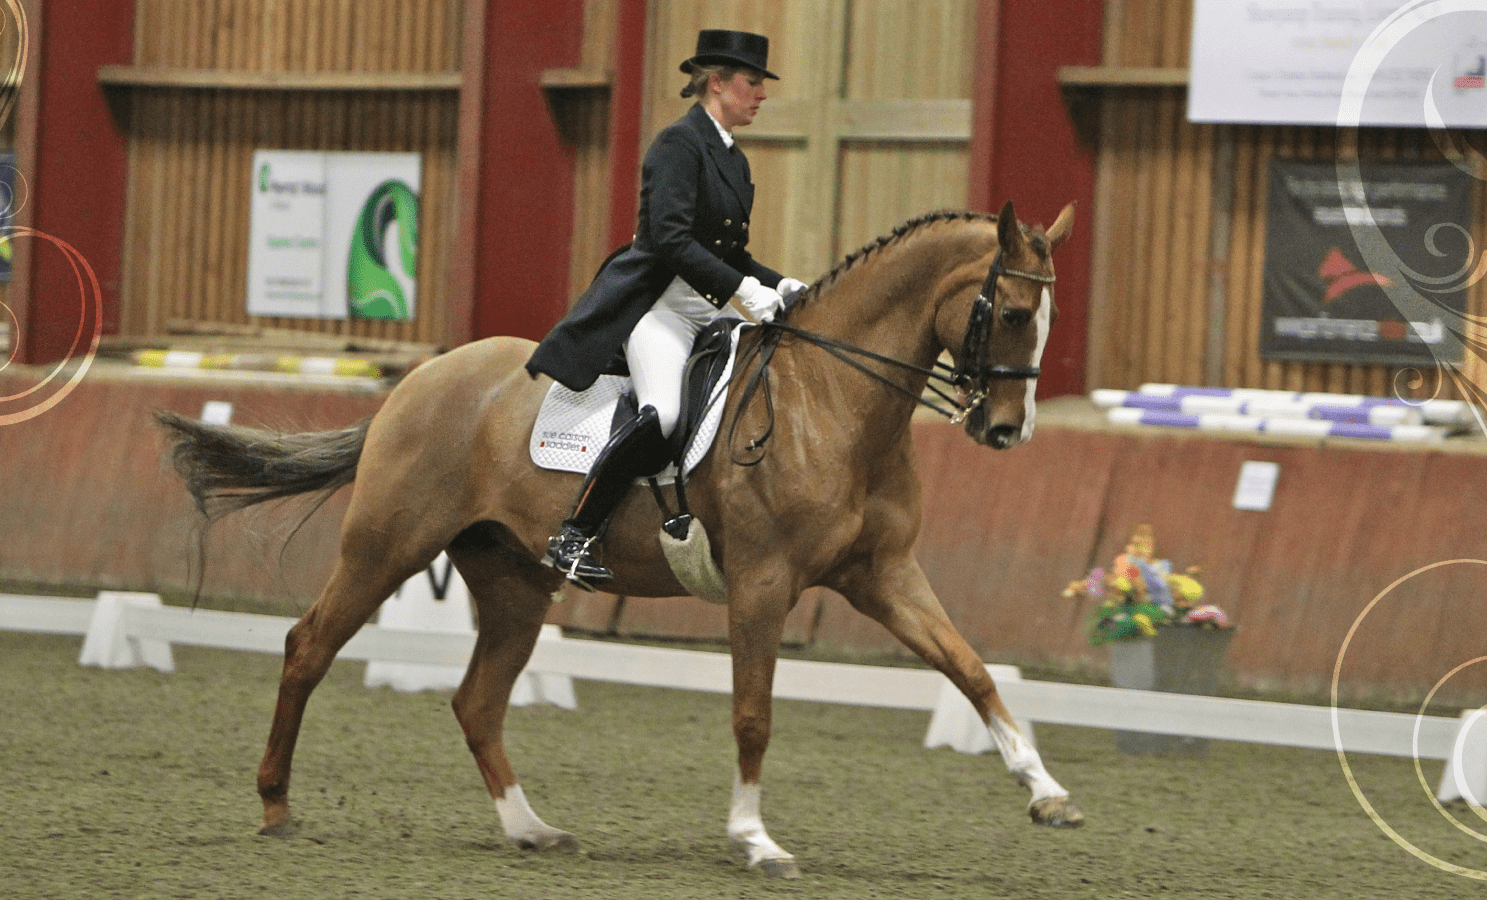 Sjoholm-Patience BHS Registered Instructor, Coach and Dressage Training throughout Sussex and Surrey